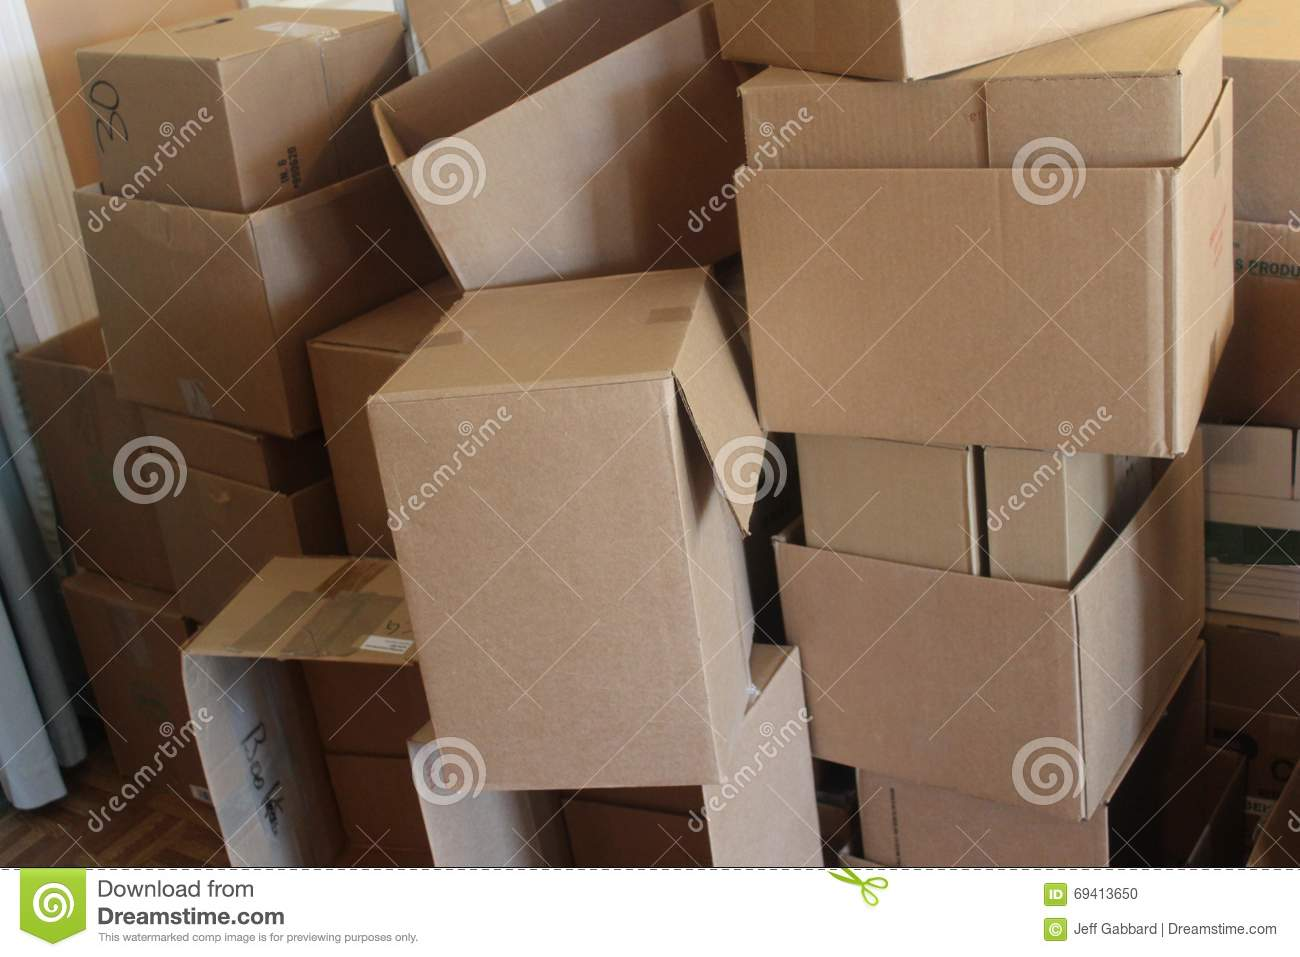 Heaping pile of cardboard boxes